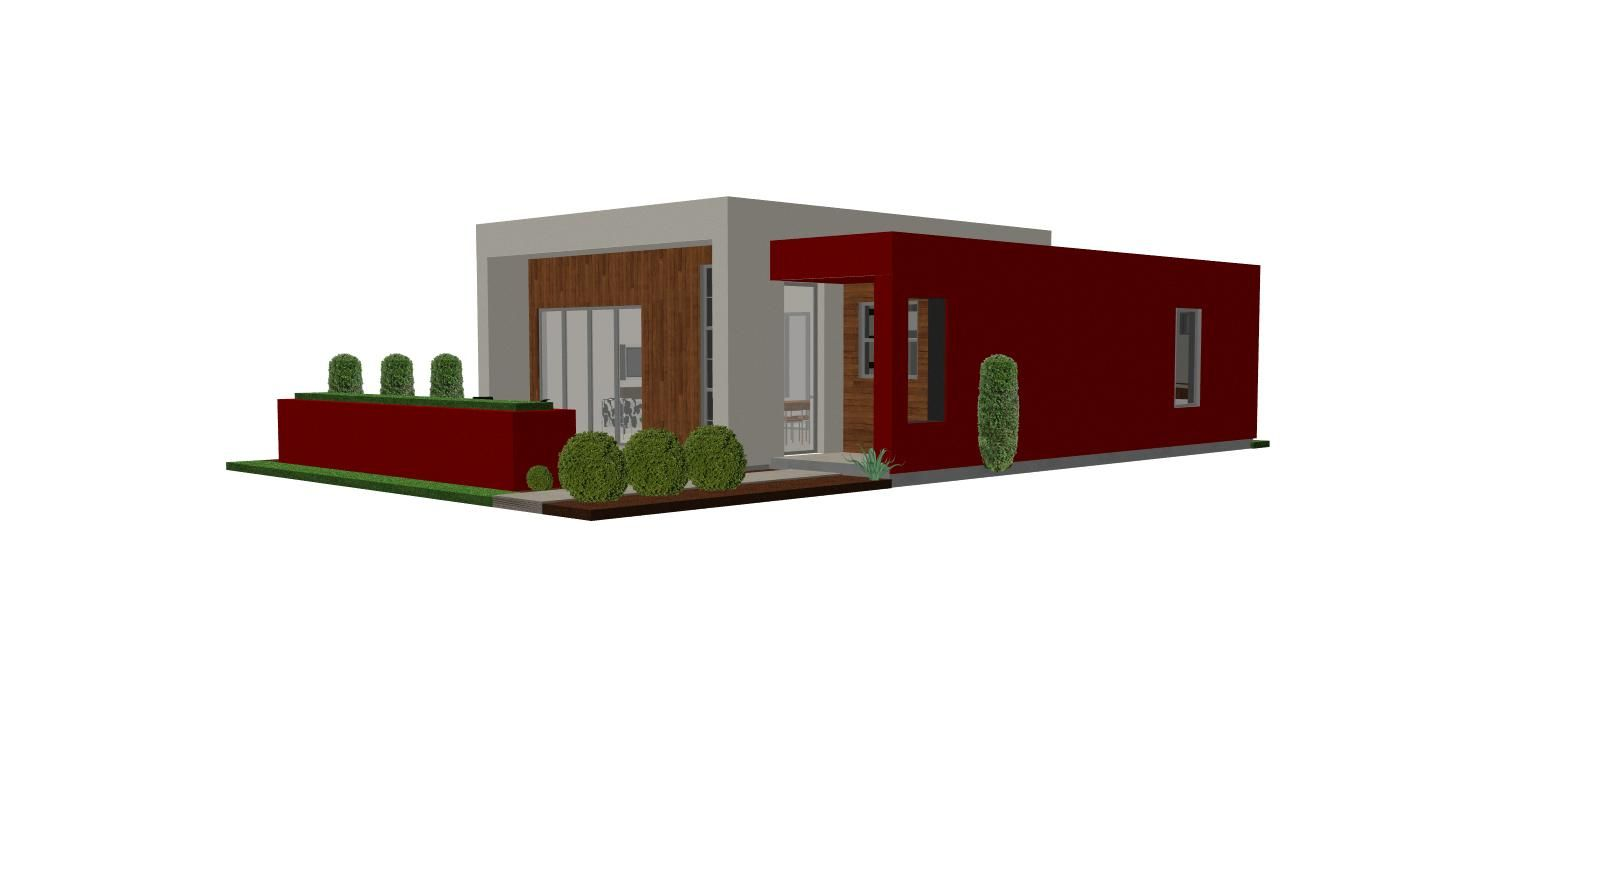 small modern house plans designs purchase this casita house plan - Small Modern House Plans